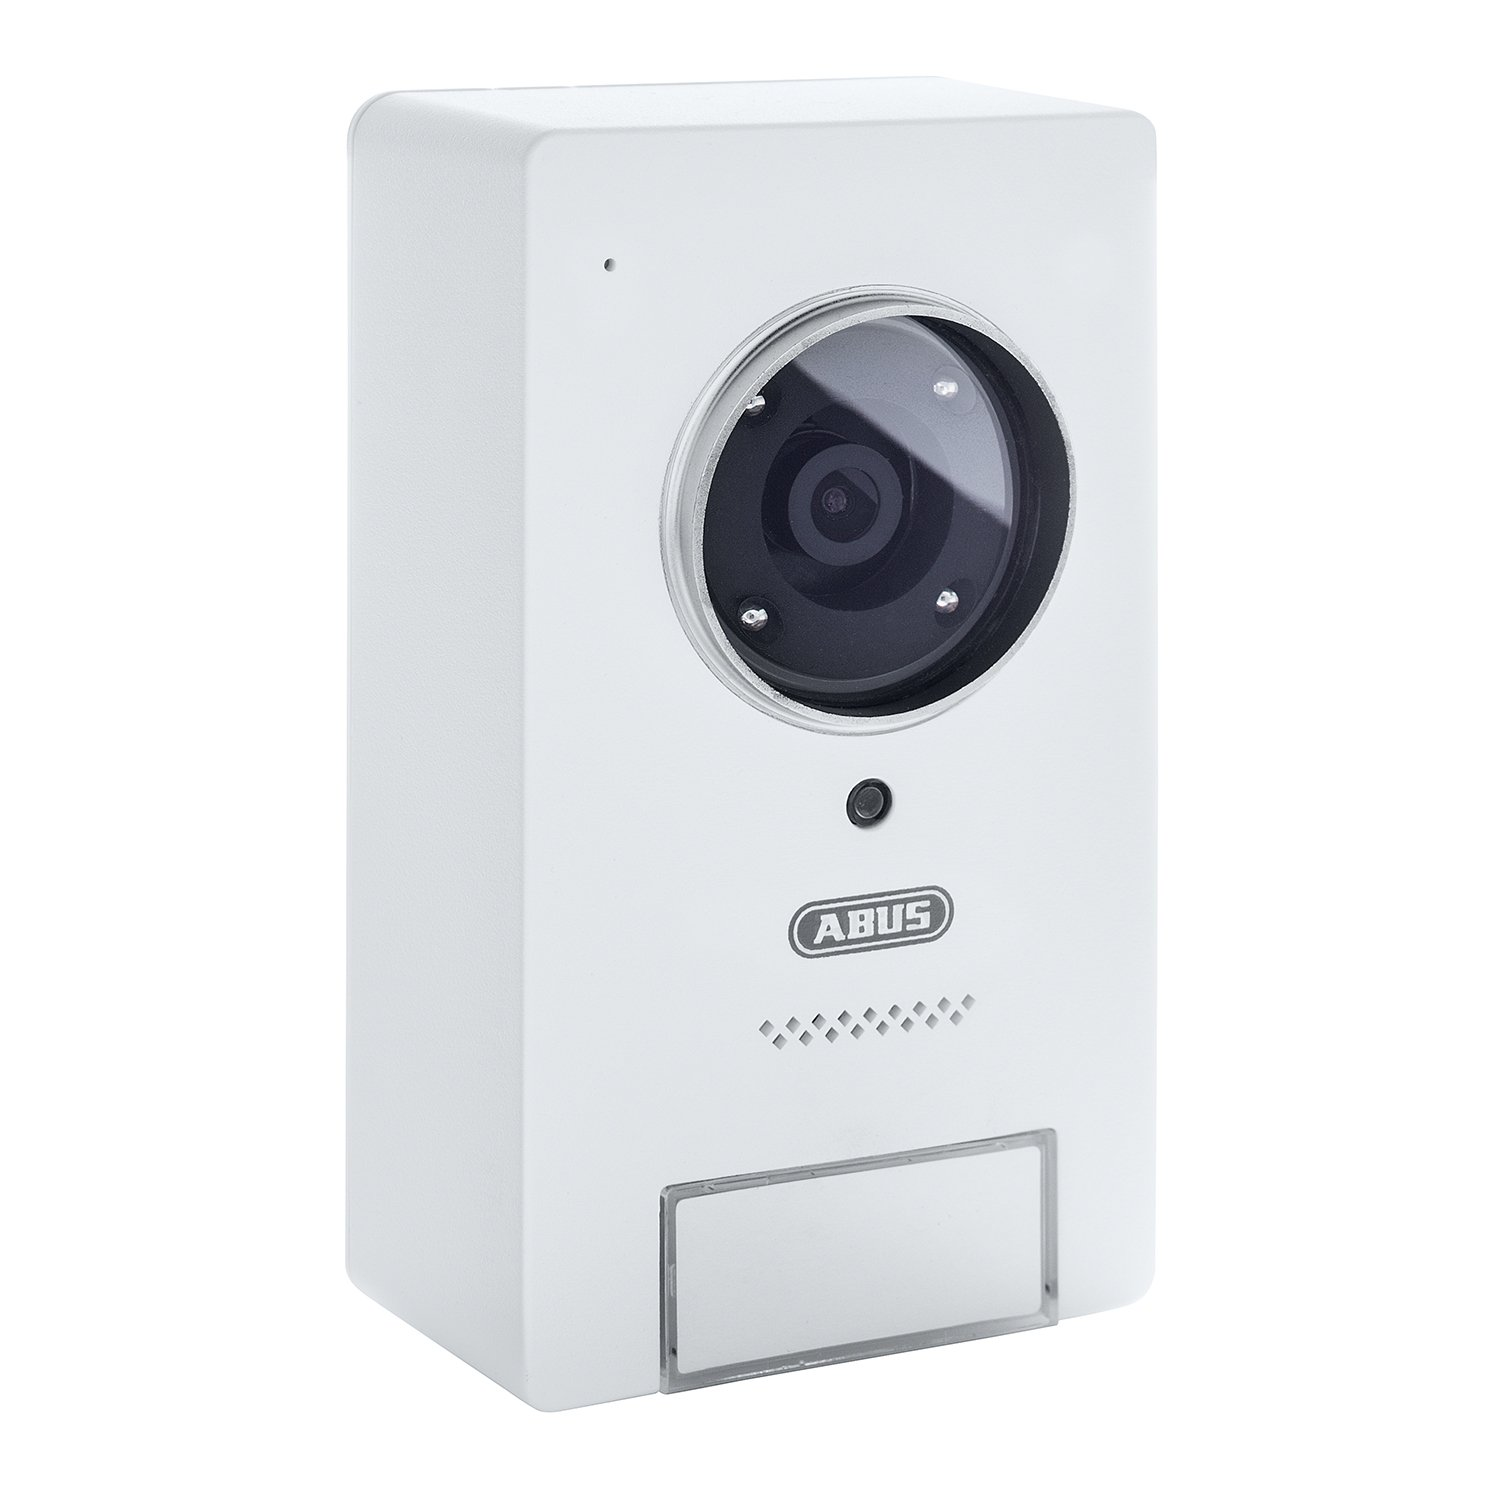 ABUS 80710 Smart Security World WiFi - Videoportero: Amazon.es: Bricolaje y herramientas